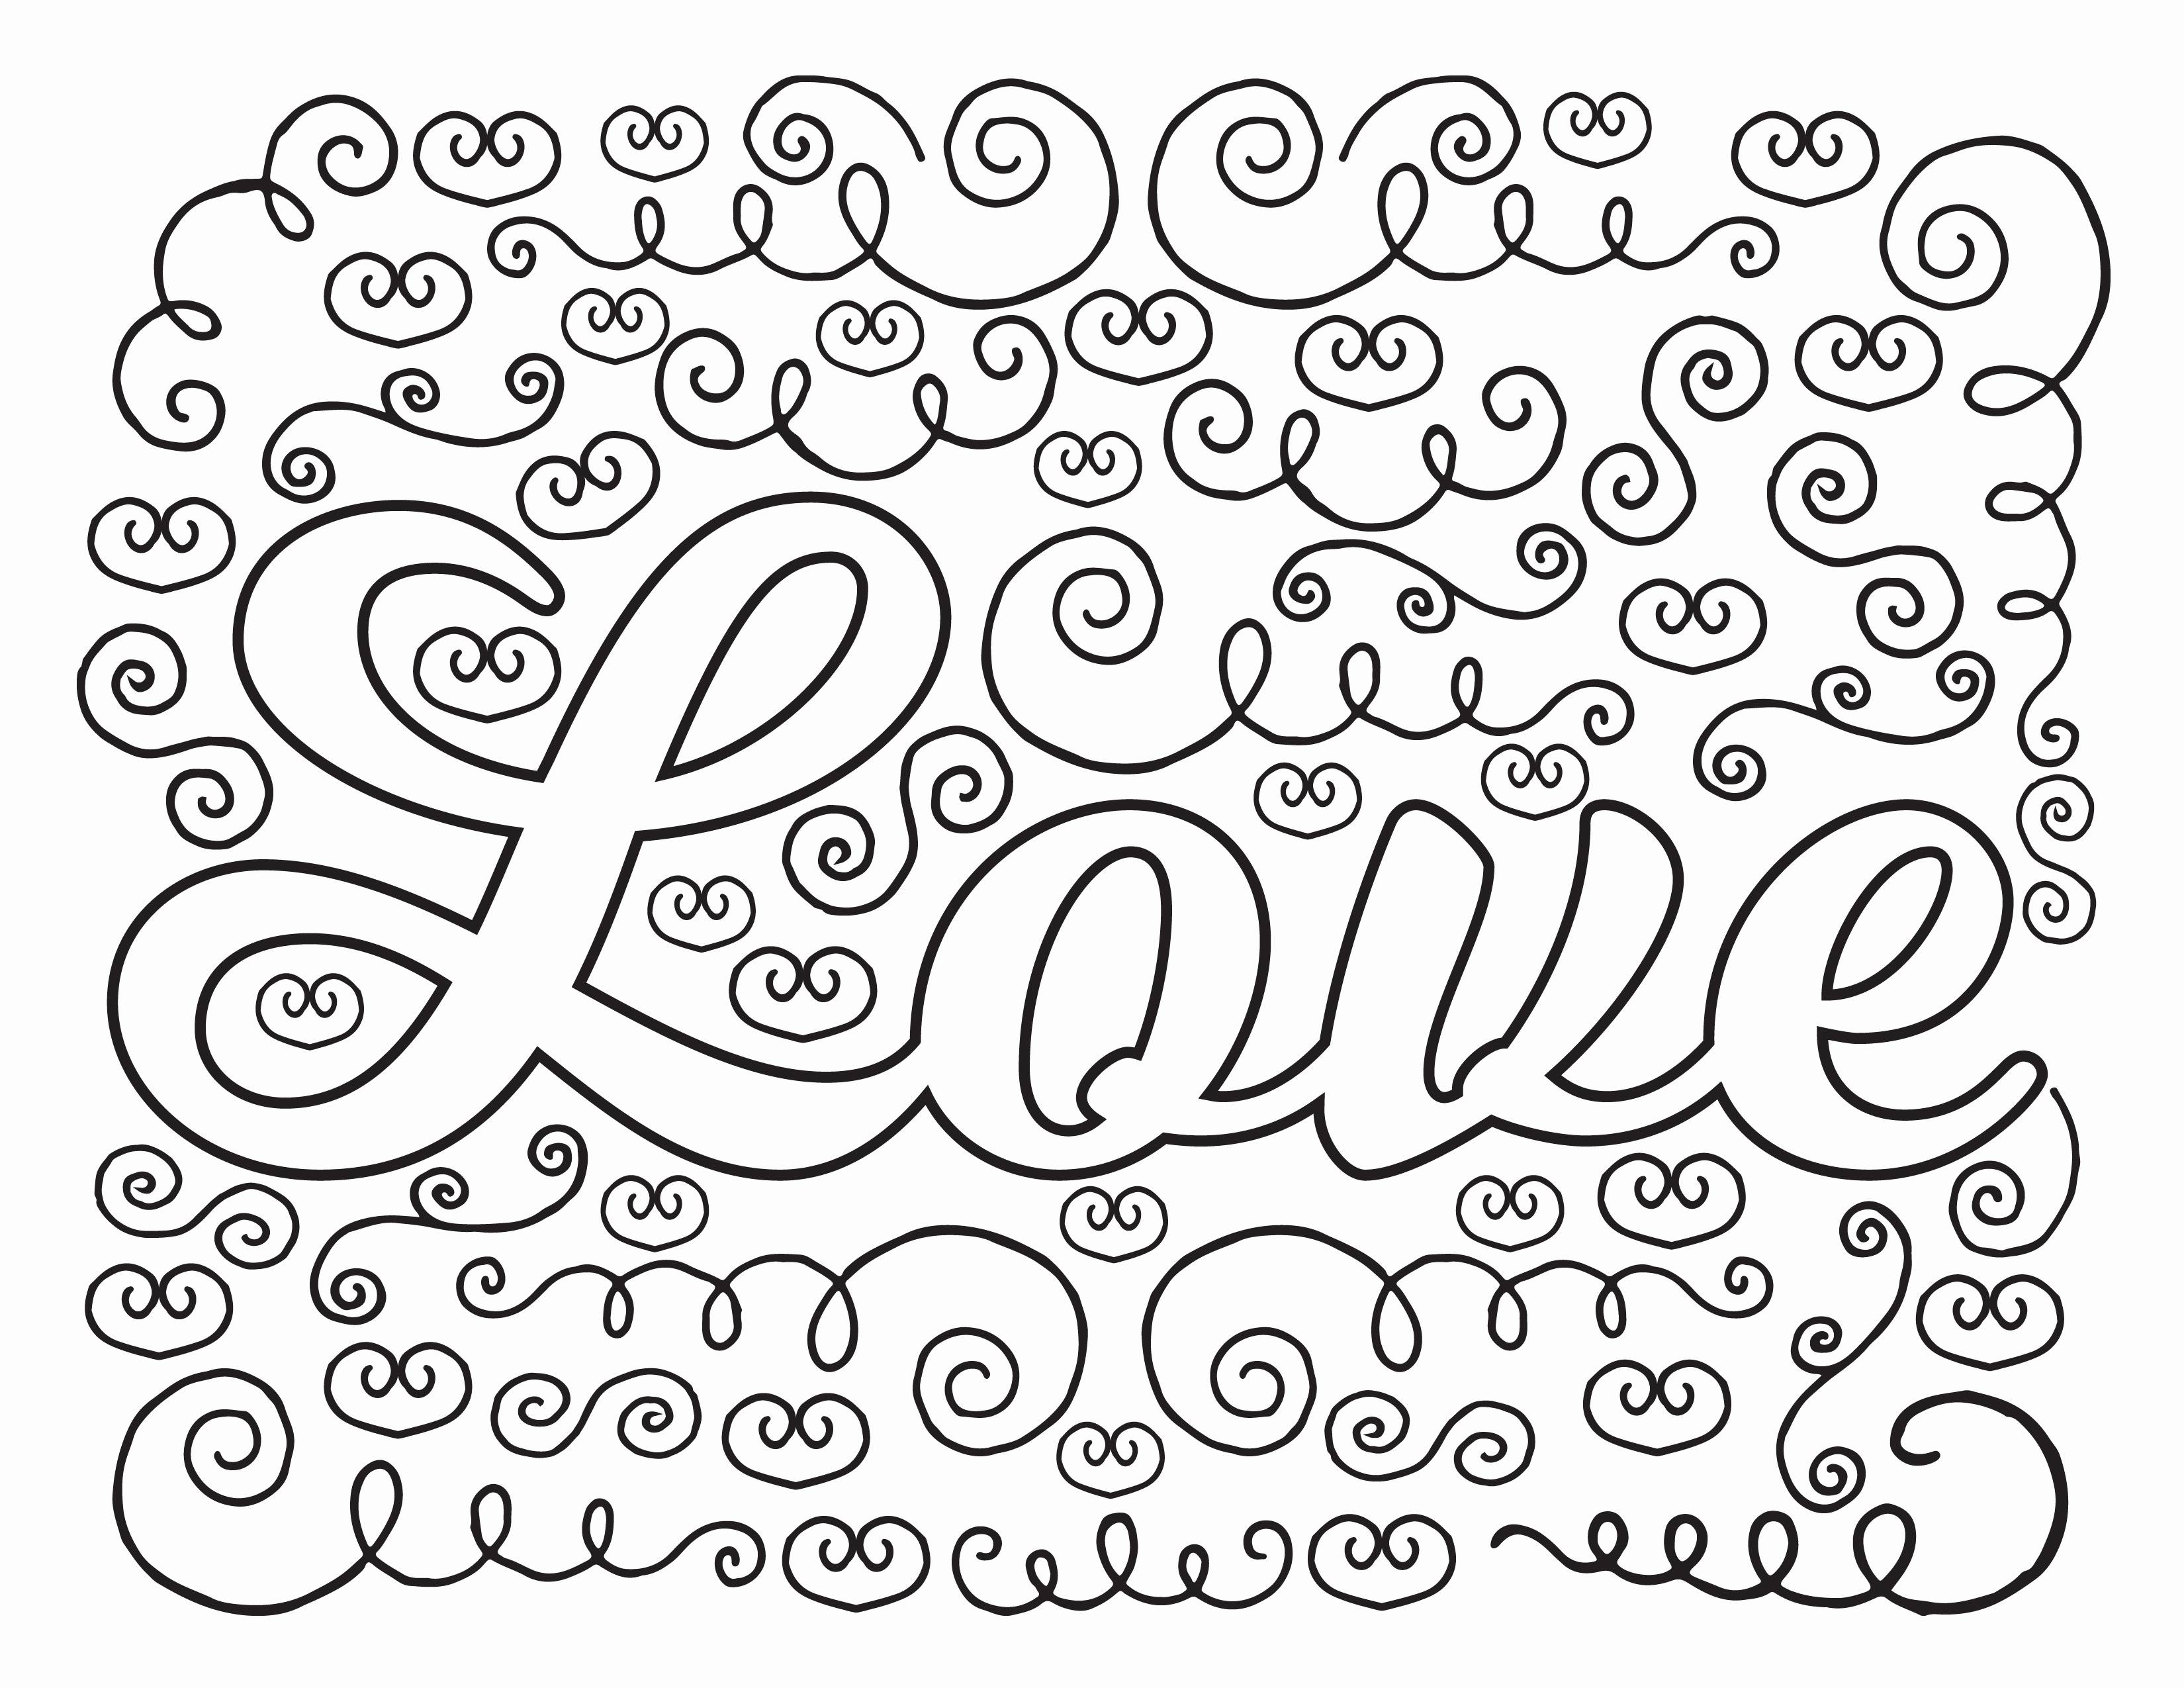 printable coloring pages for teens Collection-Cool Coloring Pages for Teens New Coloring Pages for Girls Lovely Printable Cds 0d – Fun Time 2-n